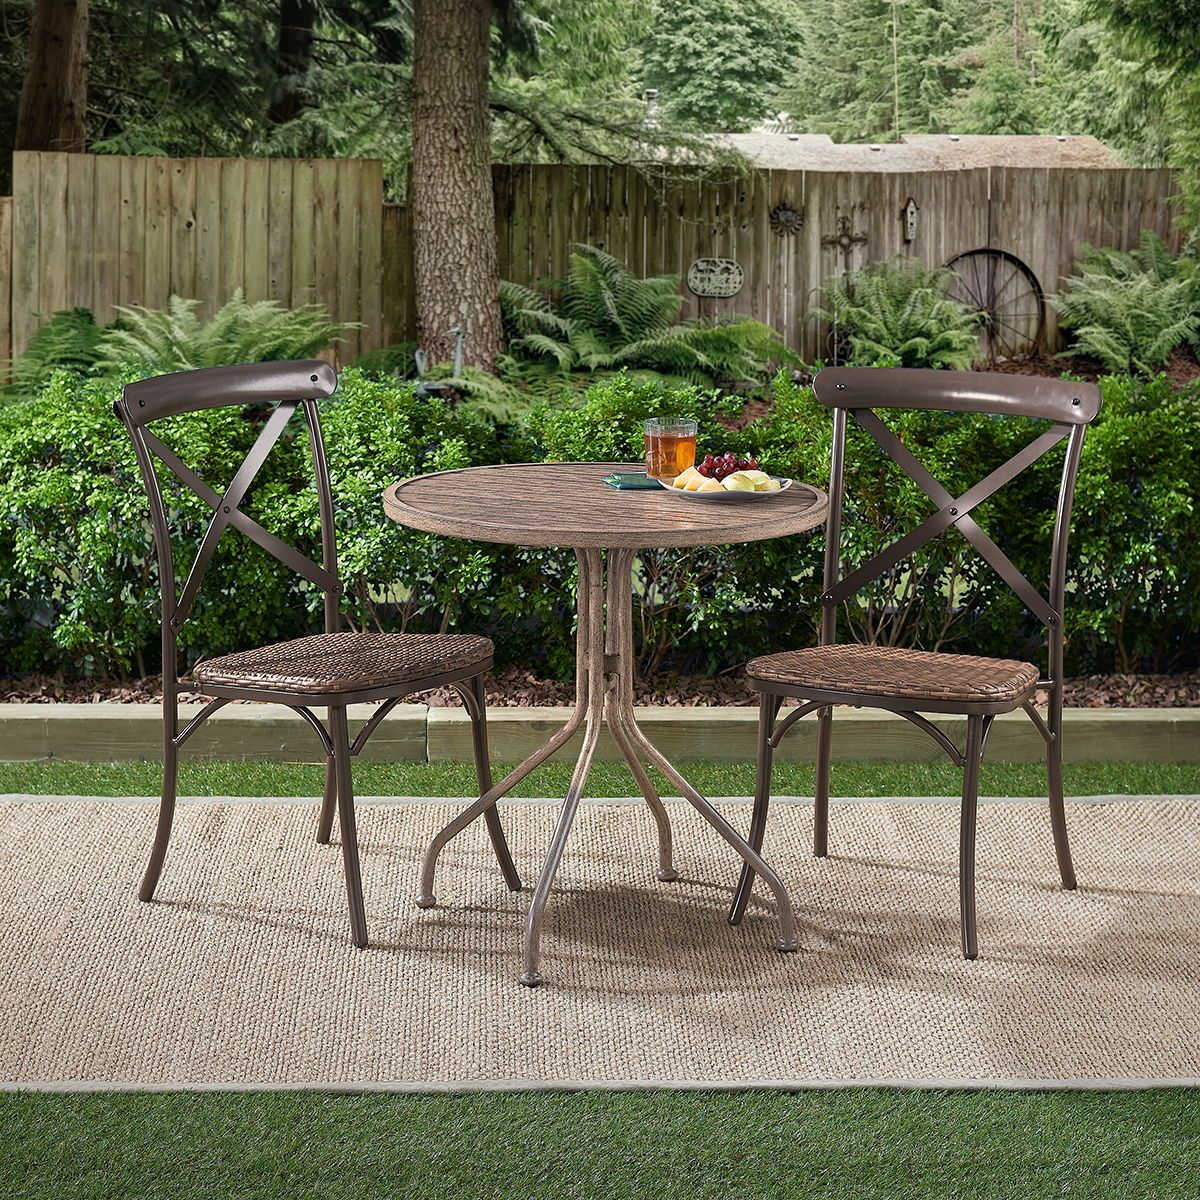 Camrose farmhouse 2piece outdoor dining chairs outdoor